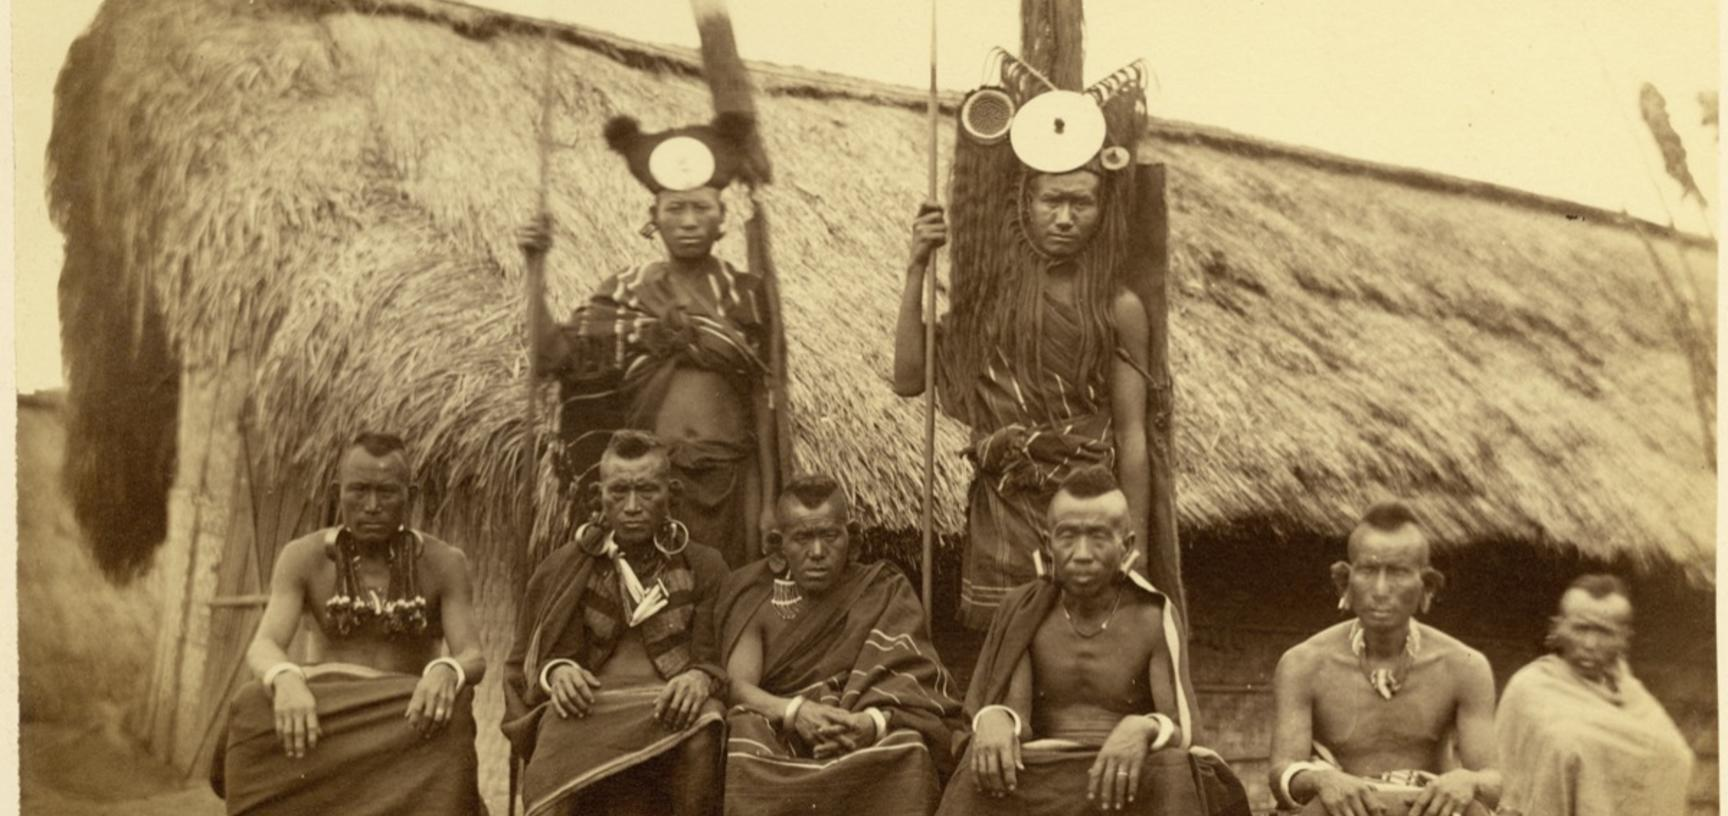 'Tangkhul Nagas' (handwritten caption). Group portrait of Tangkhul Naga men, standing and sitting, pictured in front of a building. Photographer unknown. Naga Hills District of Assam (now in Manipur), India. 1873–1874. (Copyright Pitt Rivers Museum, Unive